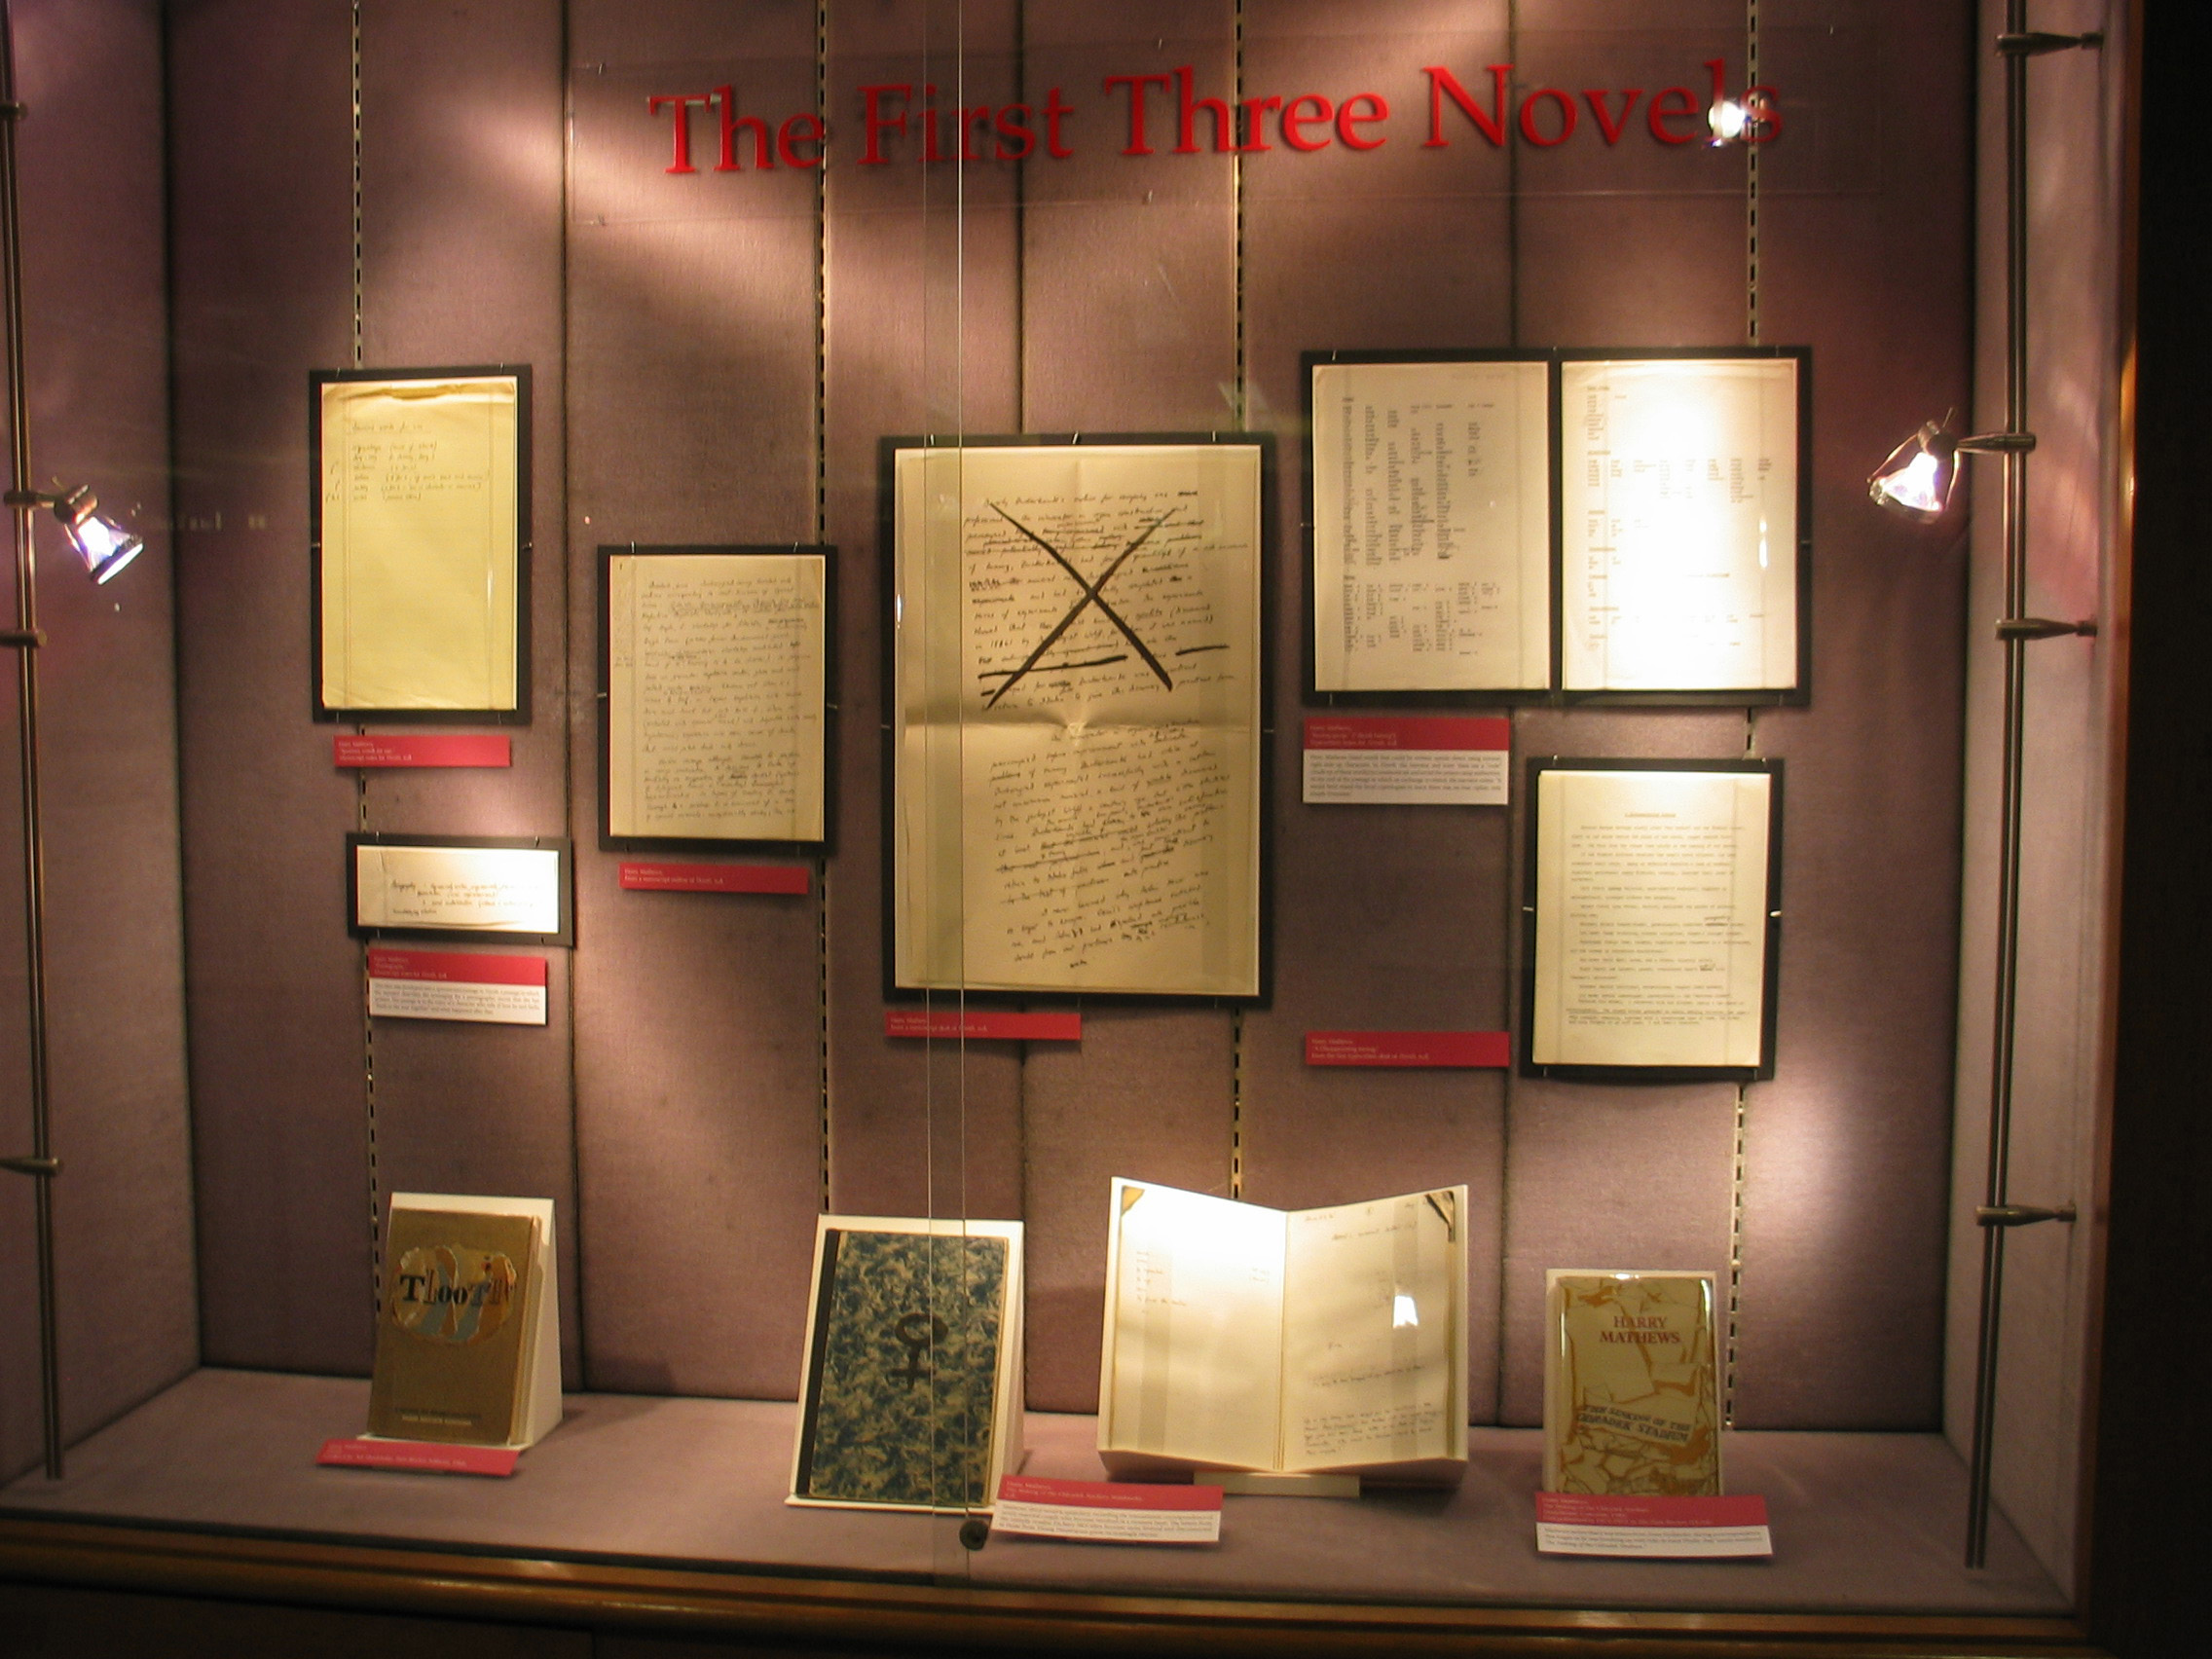 Case 6 - The First Three Novels